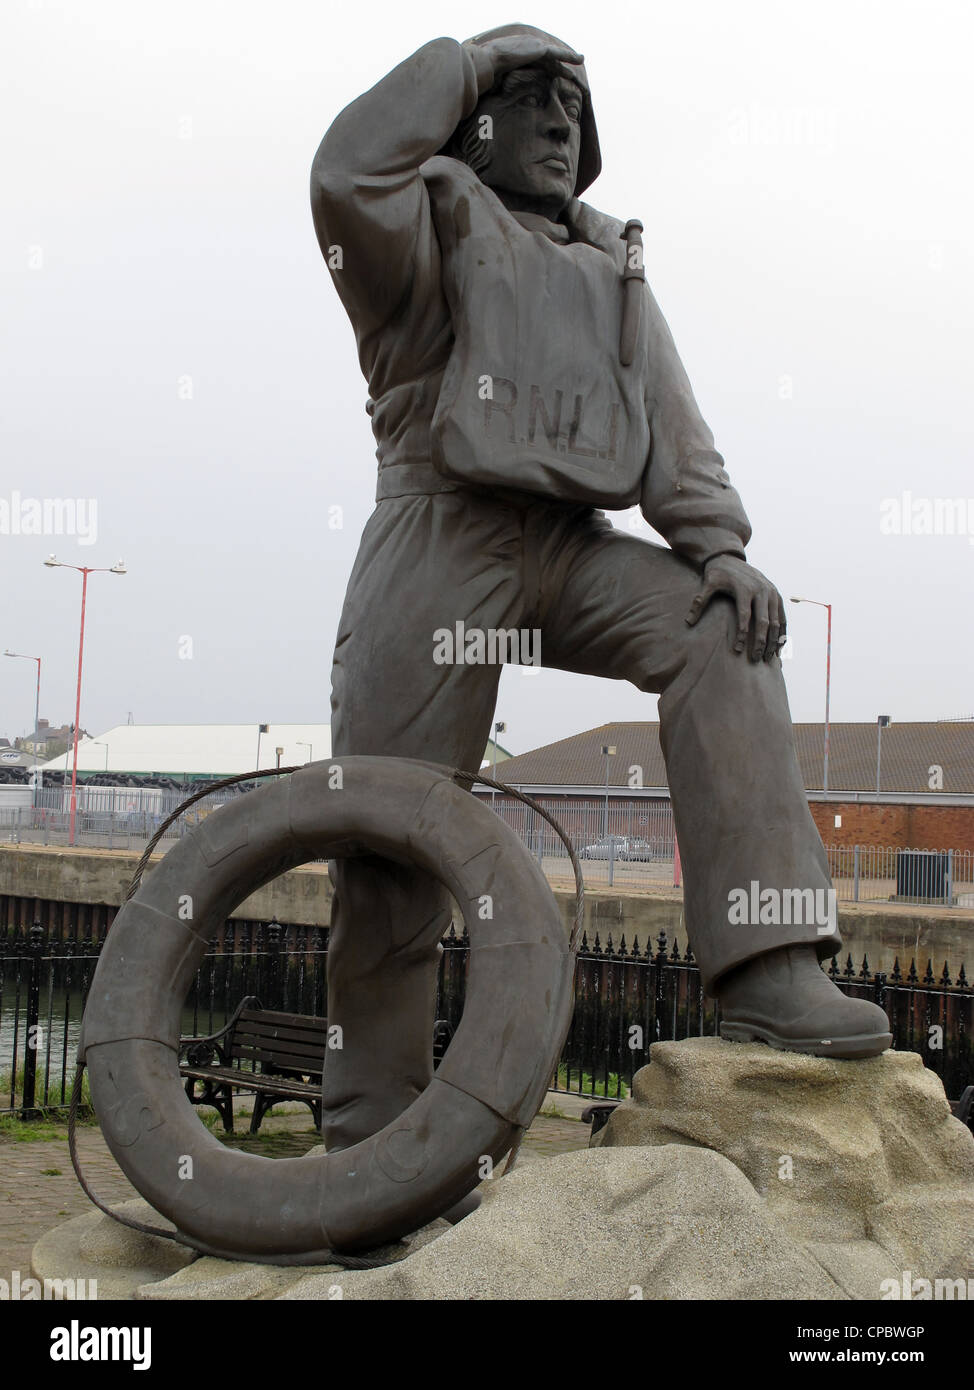 Statue of Lifeboat Captain in Lowestoft, Suffolk -1 - Stock Image